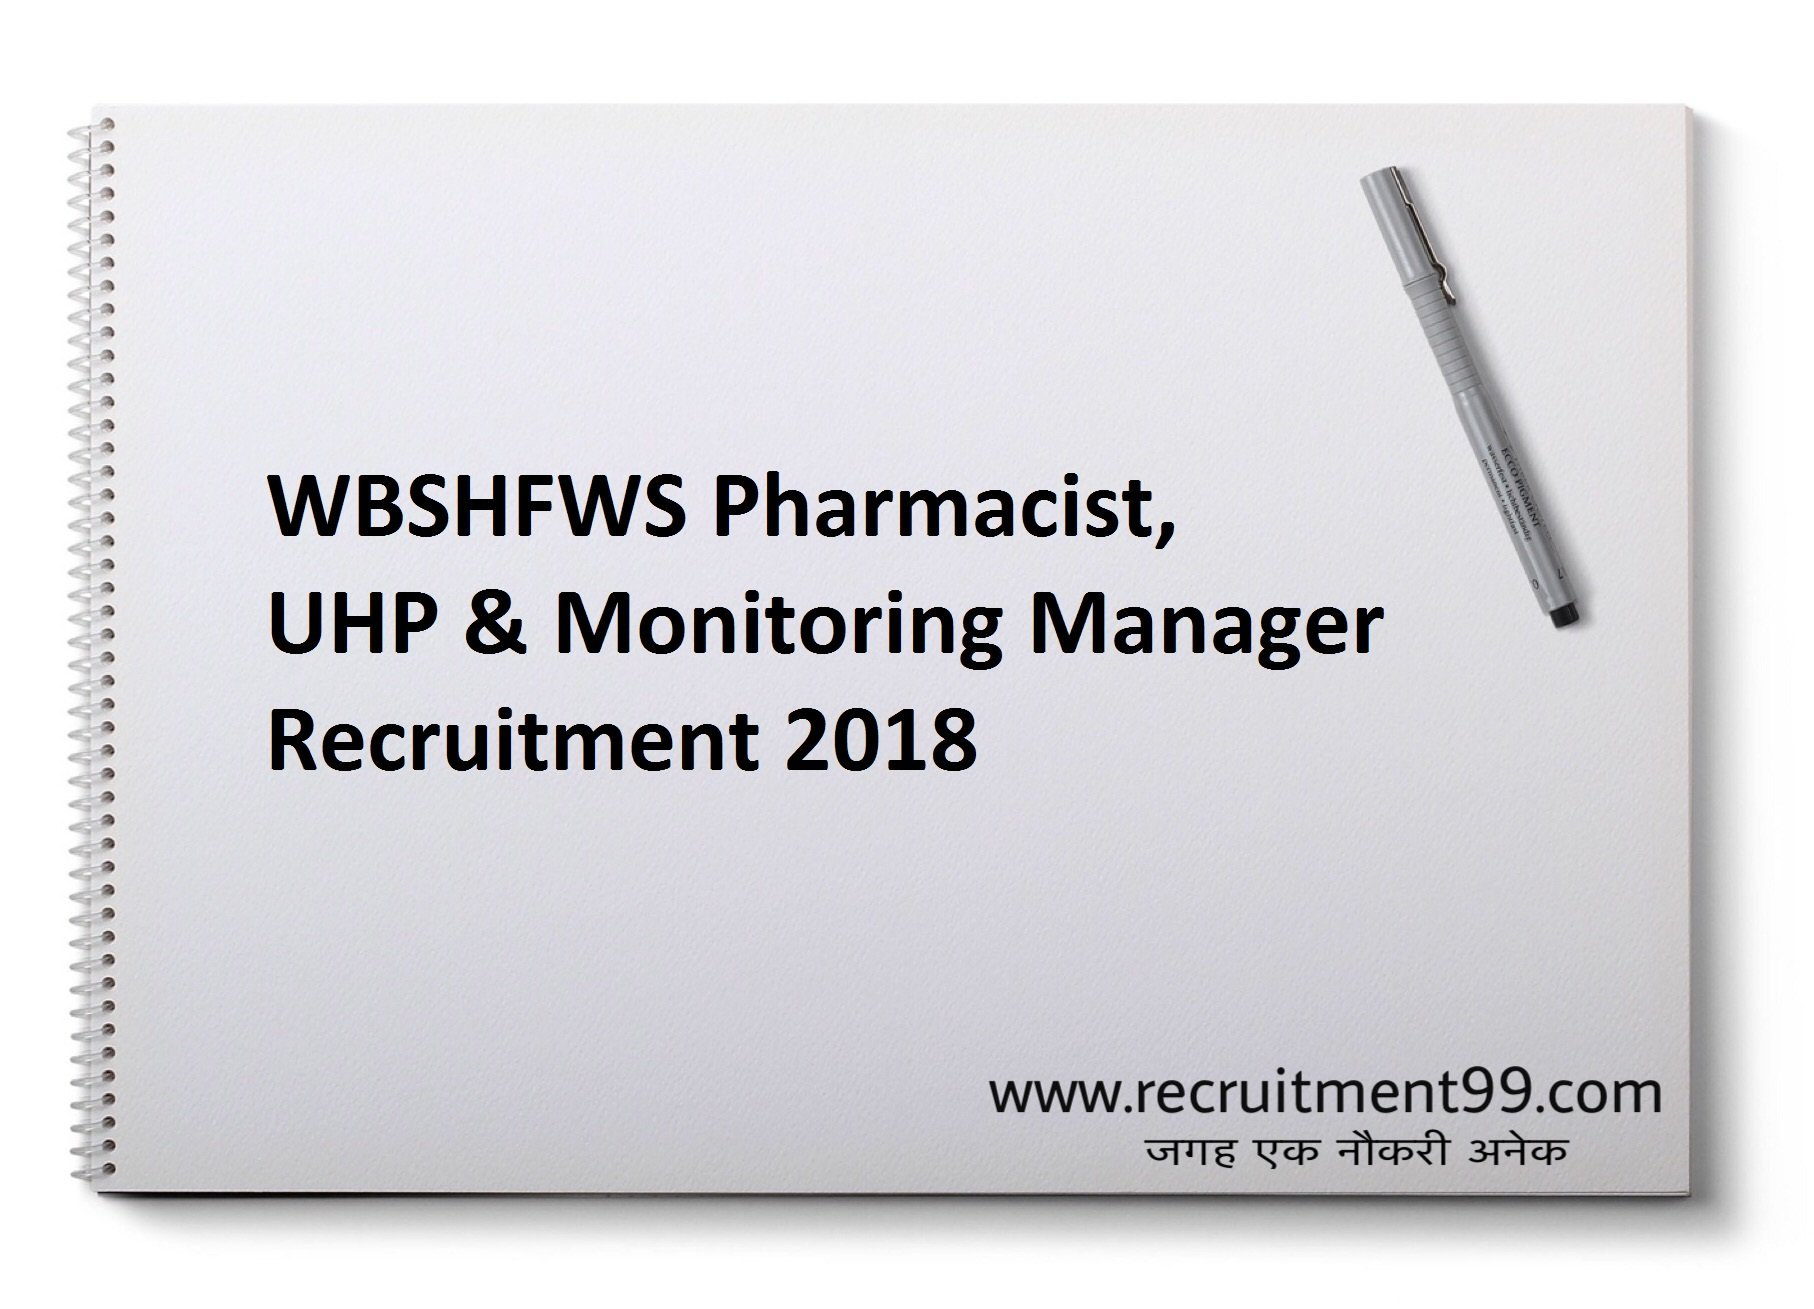 WBSHFWS Pharmacist, UHP & Monitoring Manager Recruitment Admit Card Result 2018